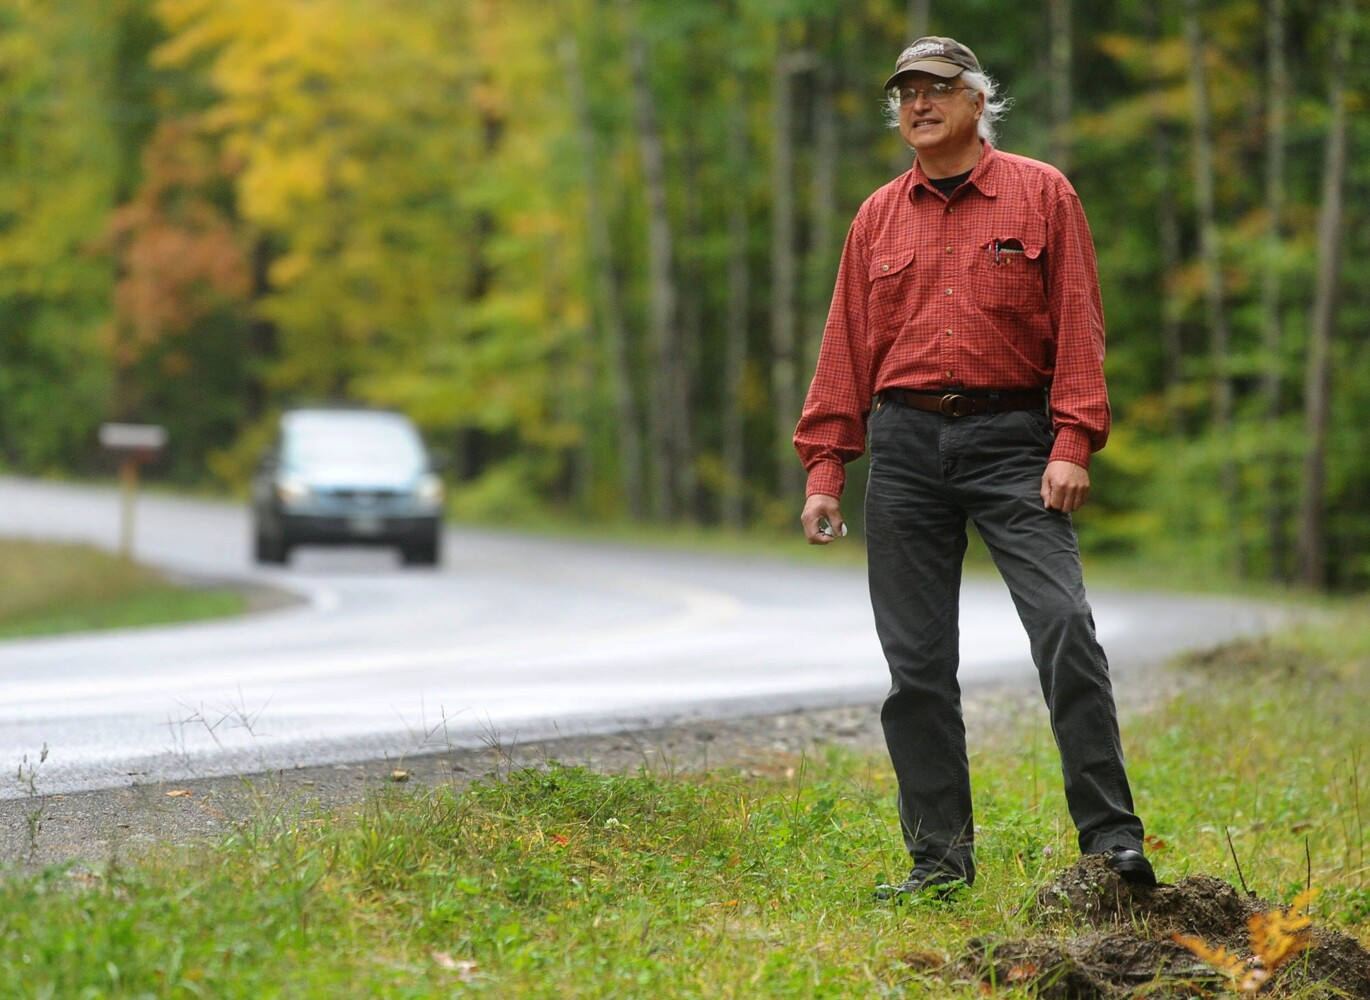 About 35 miles of Maine roads have been treated with now-banned sealant - CentralMaine.com